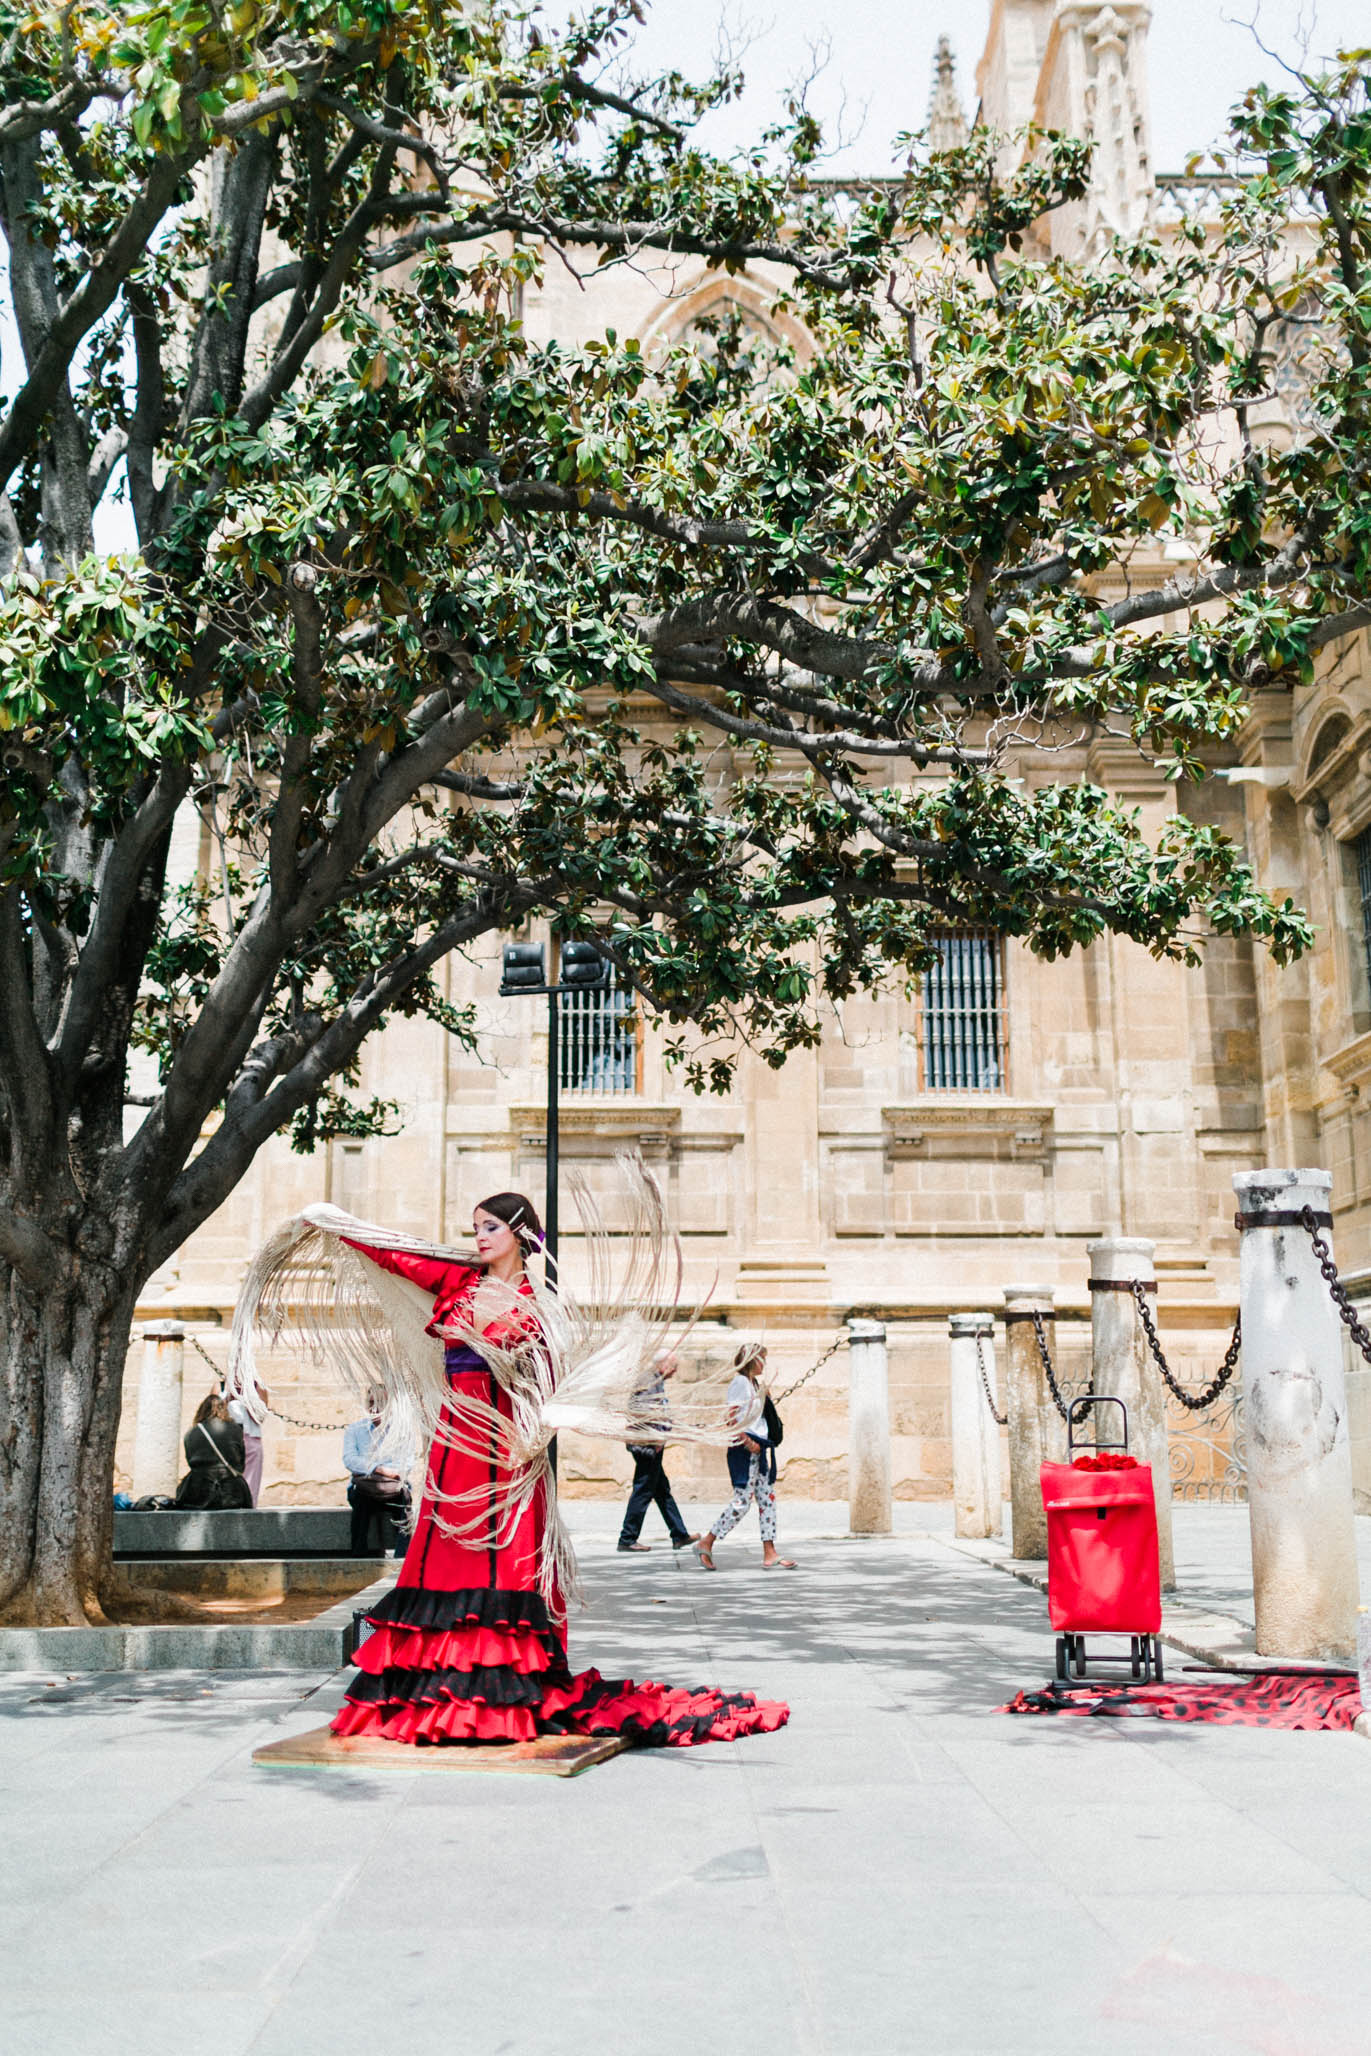 This beautiful woman just casually flamenco dancing on a beautiful corner of the cathedral.  Her moves were  powerful.